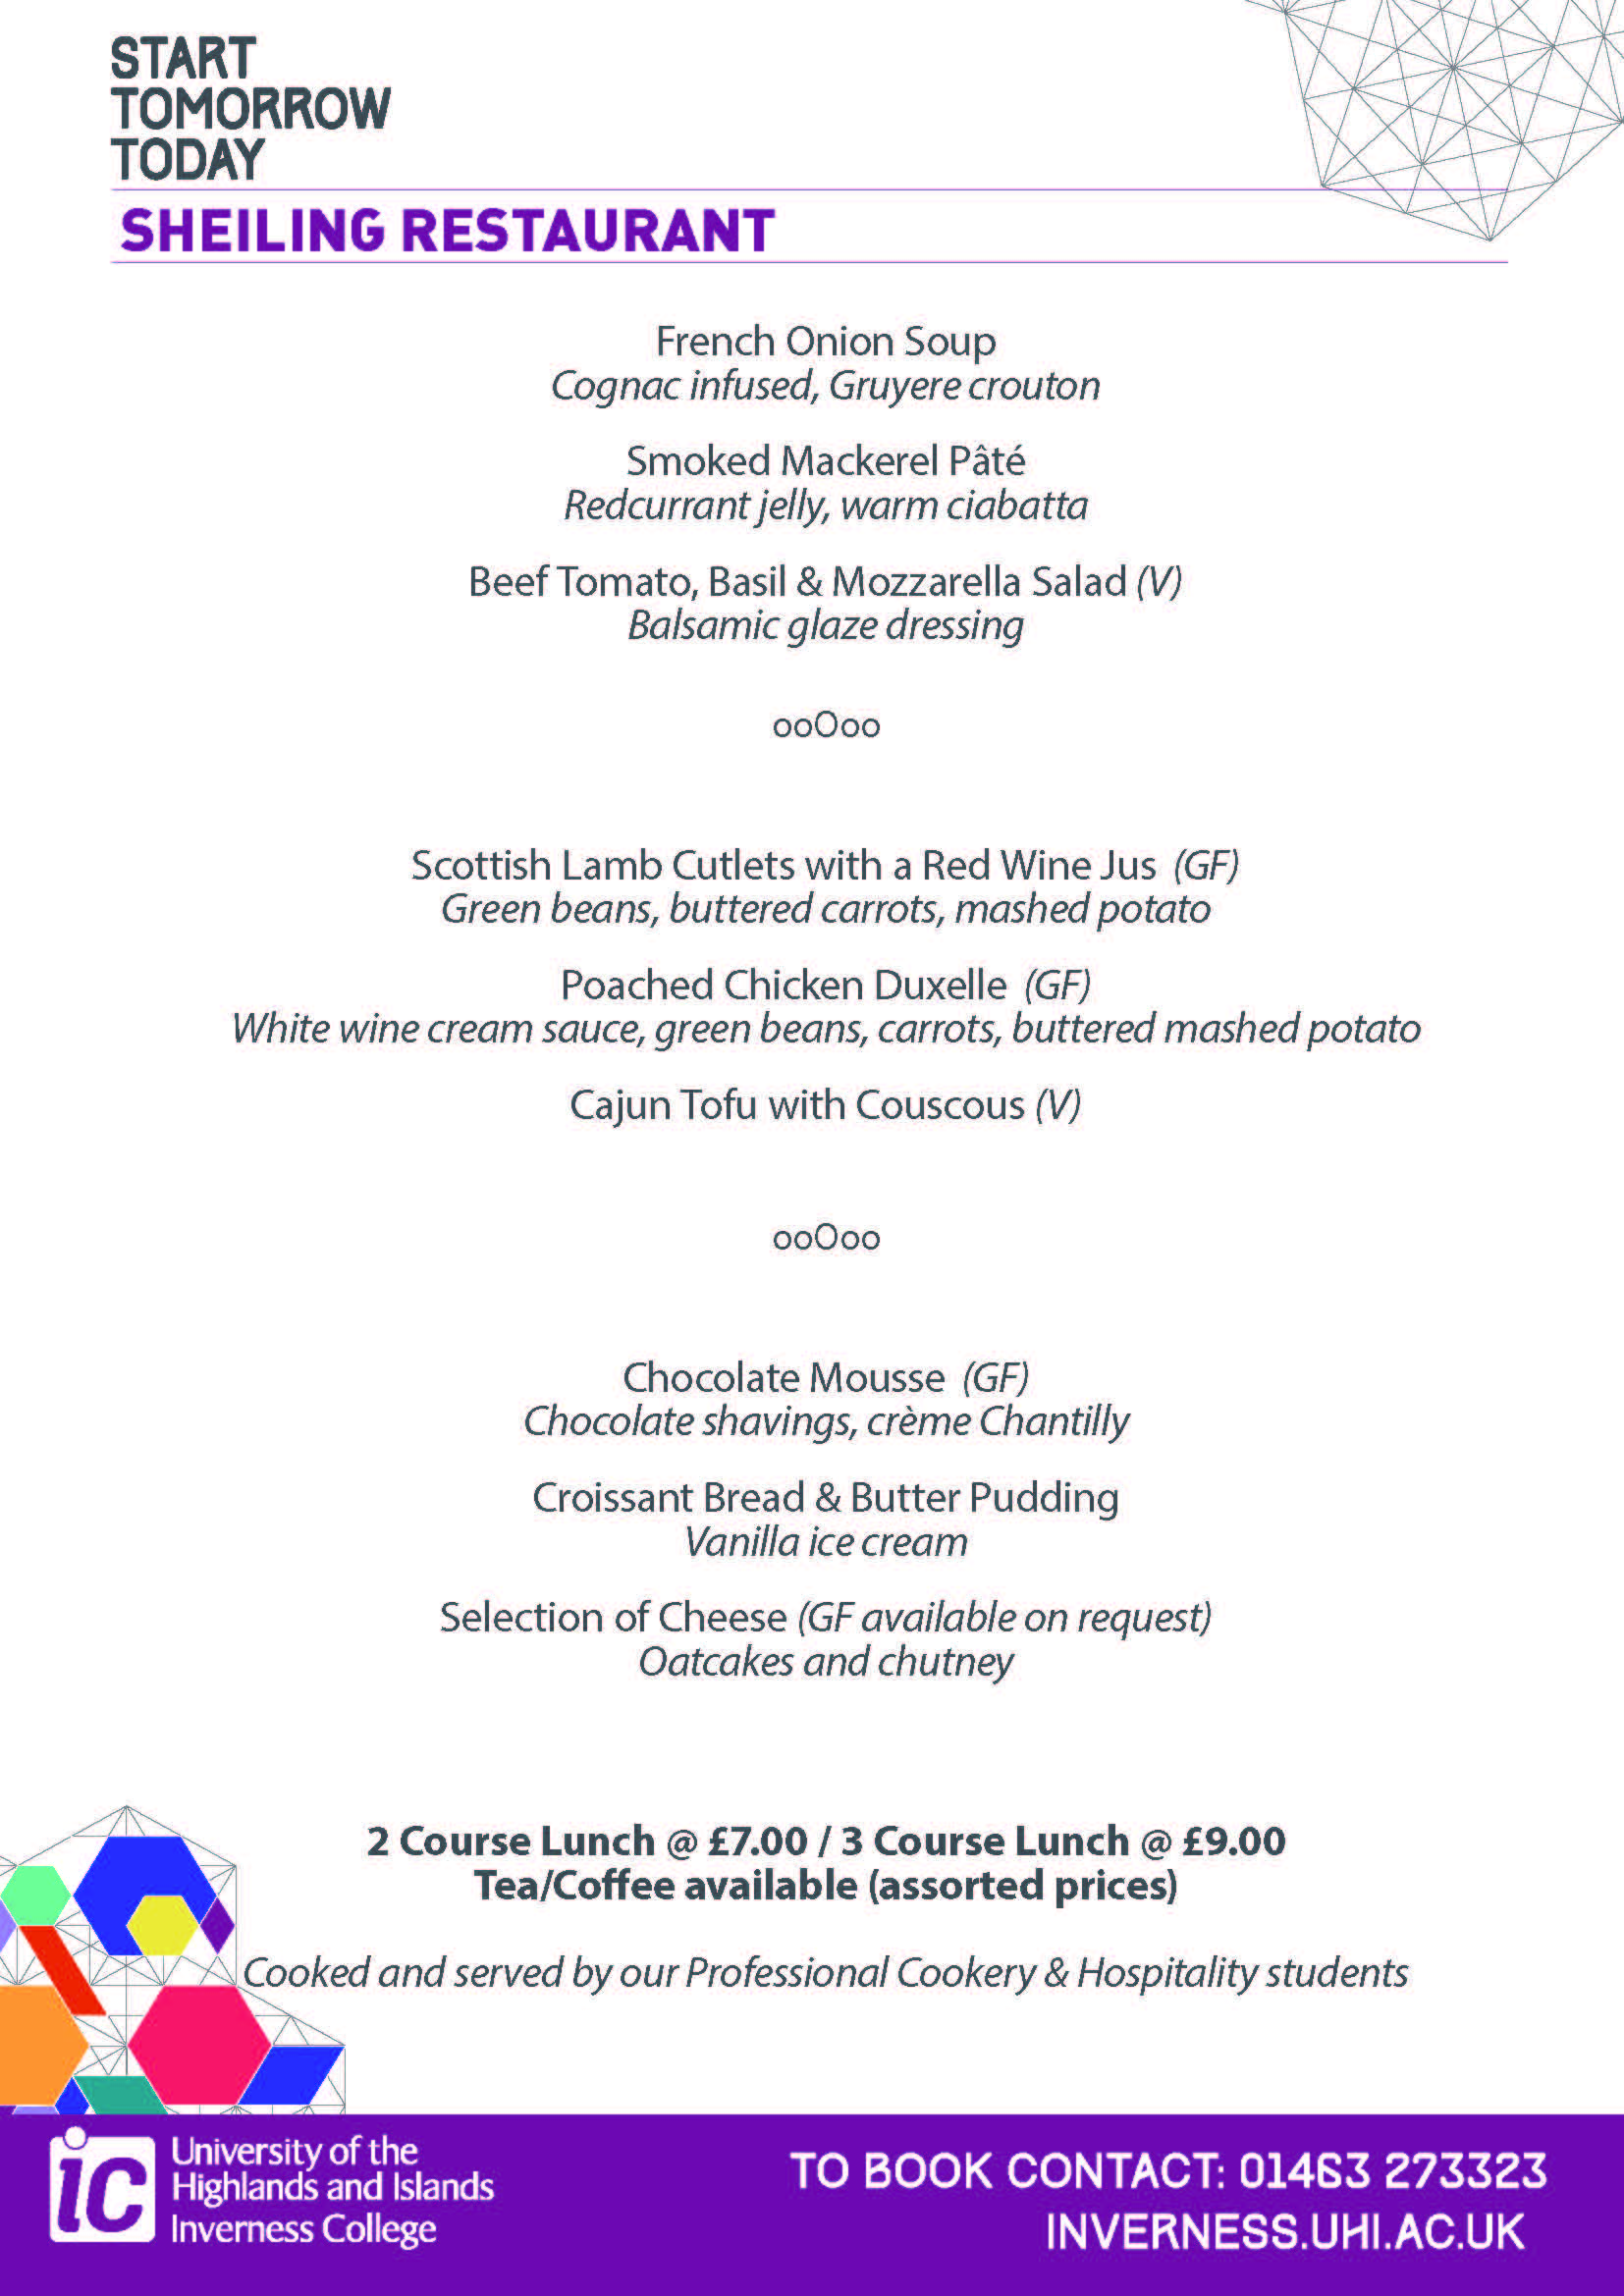 Sample lunch menu, Shieling Restaurant, Inverness College UHI